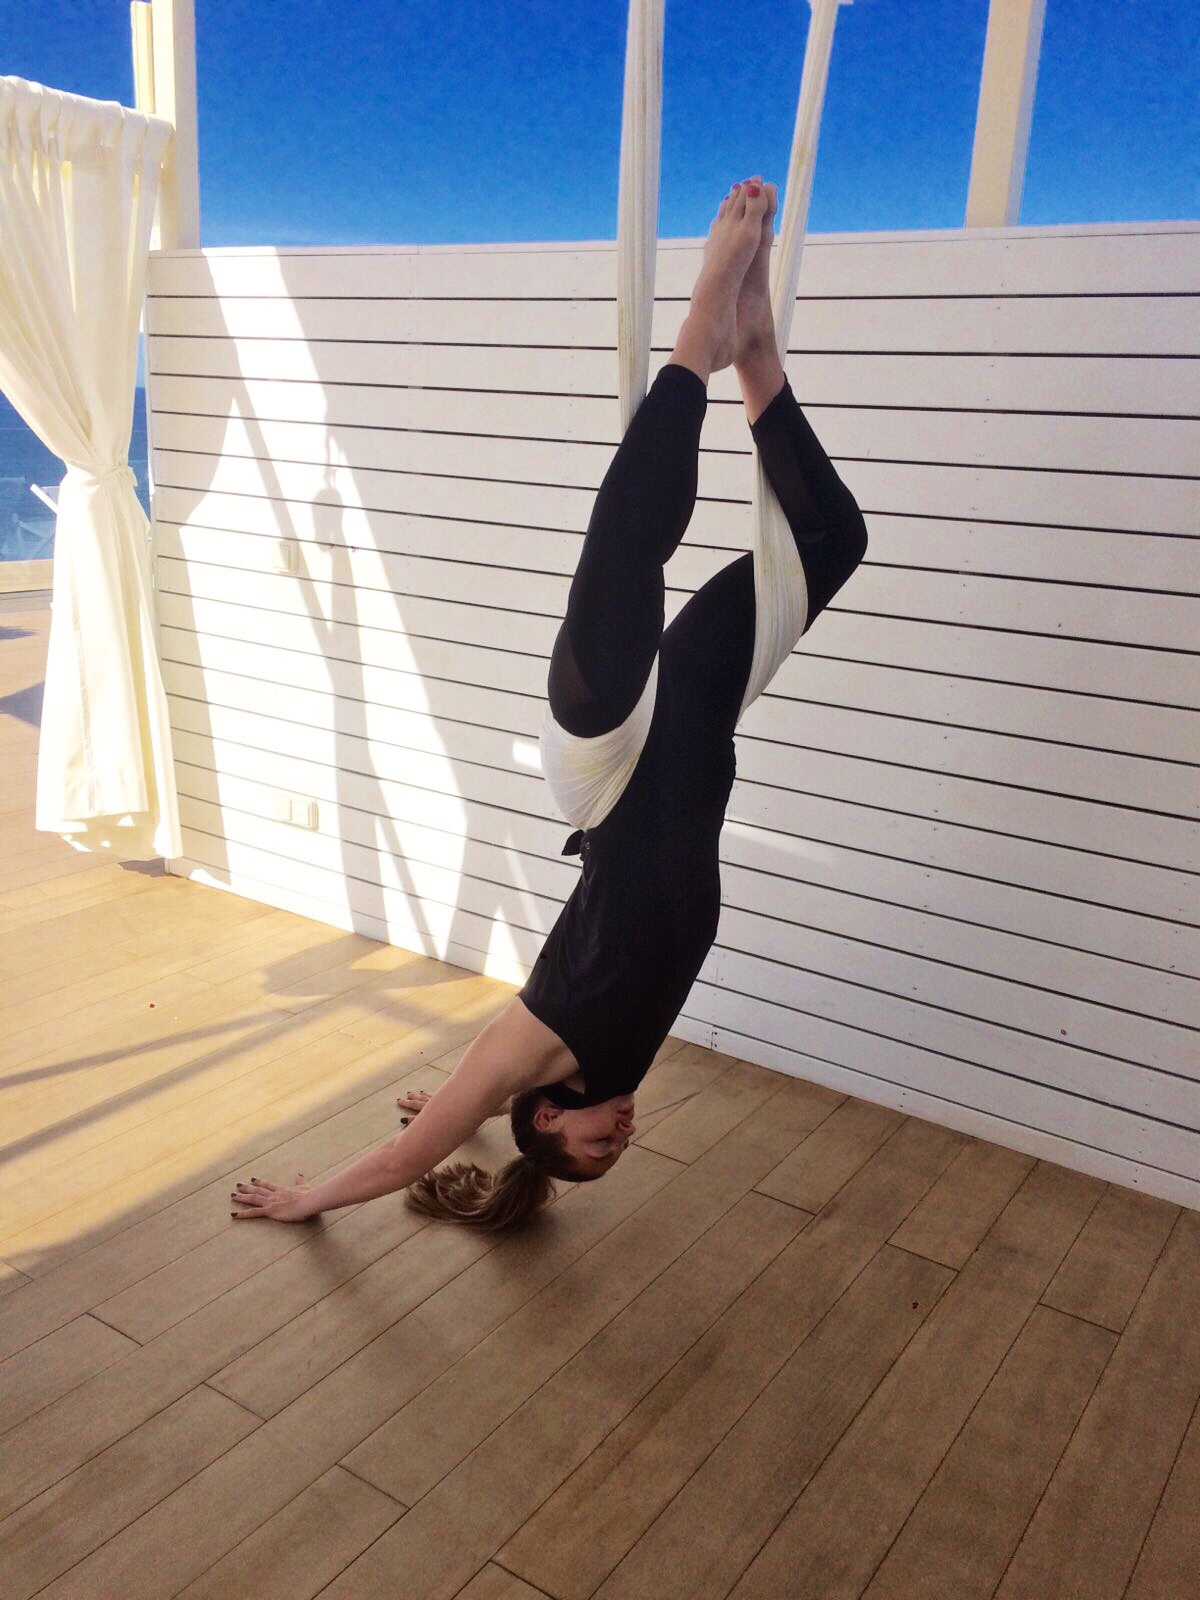 Aerial hangtime at the ME